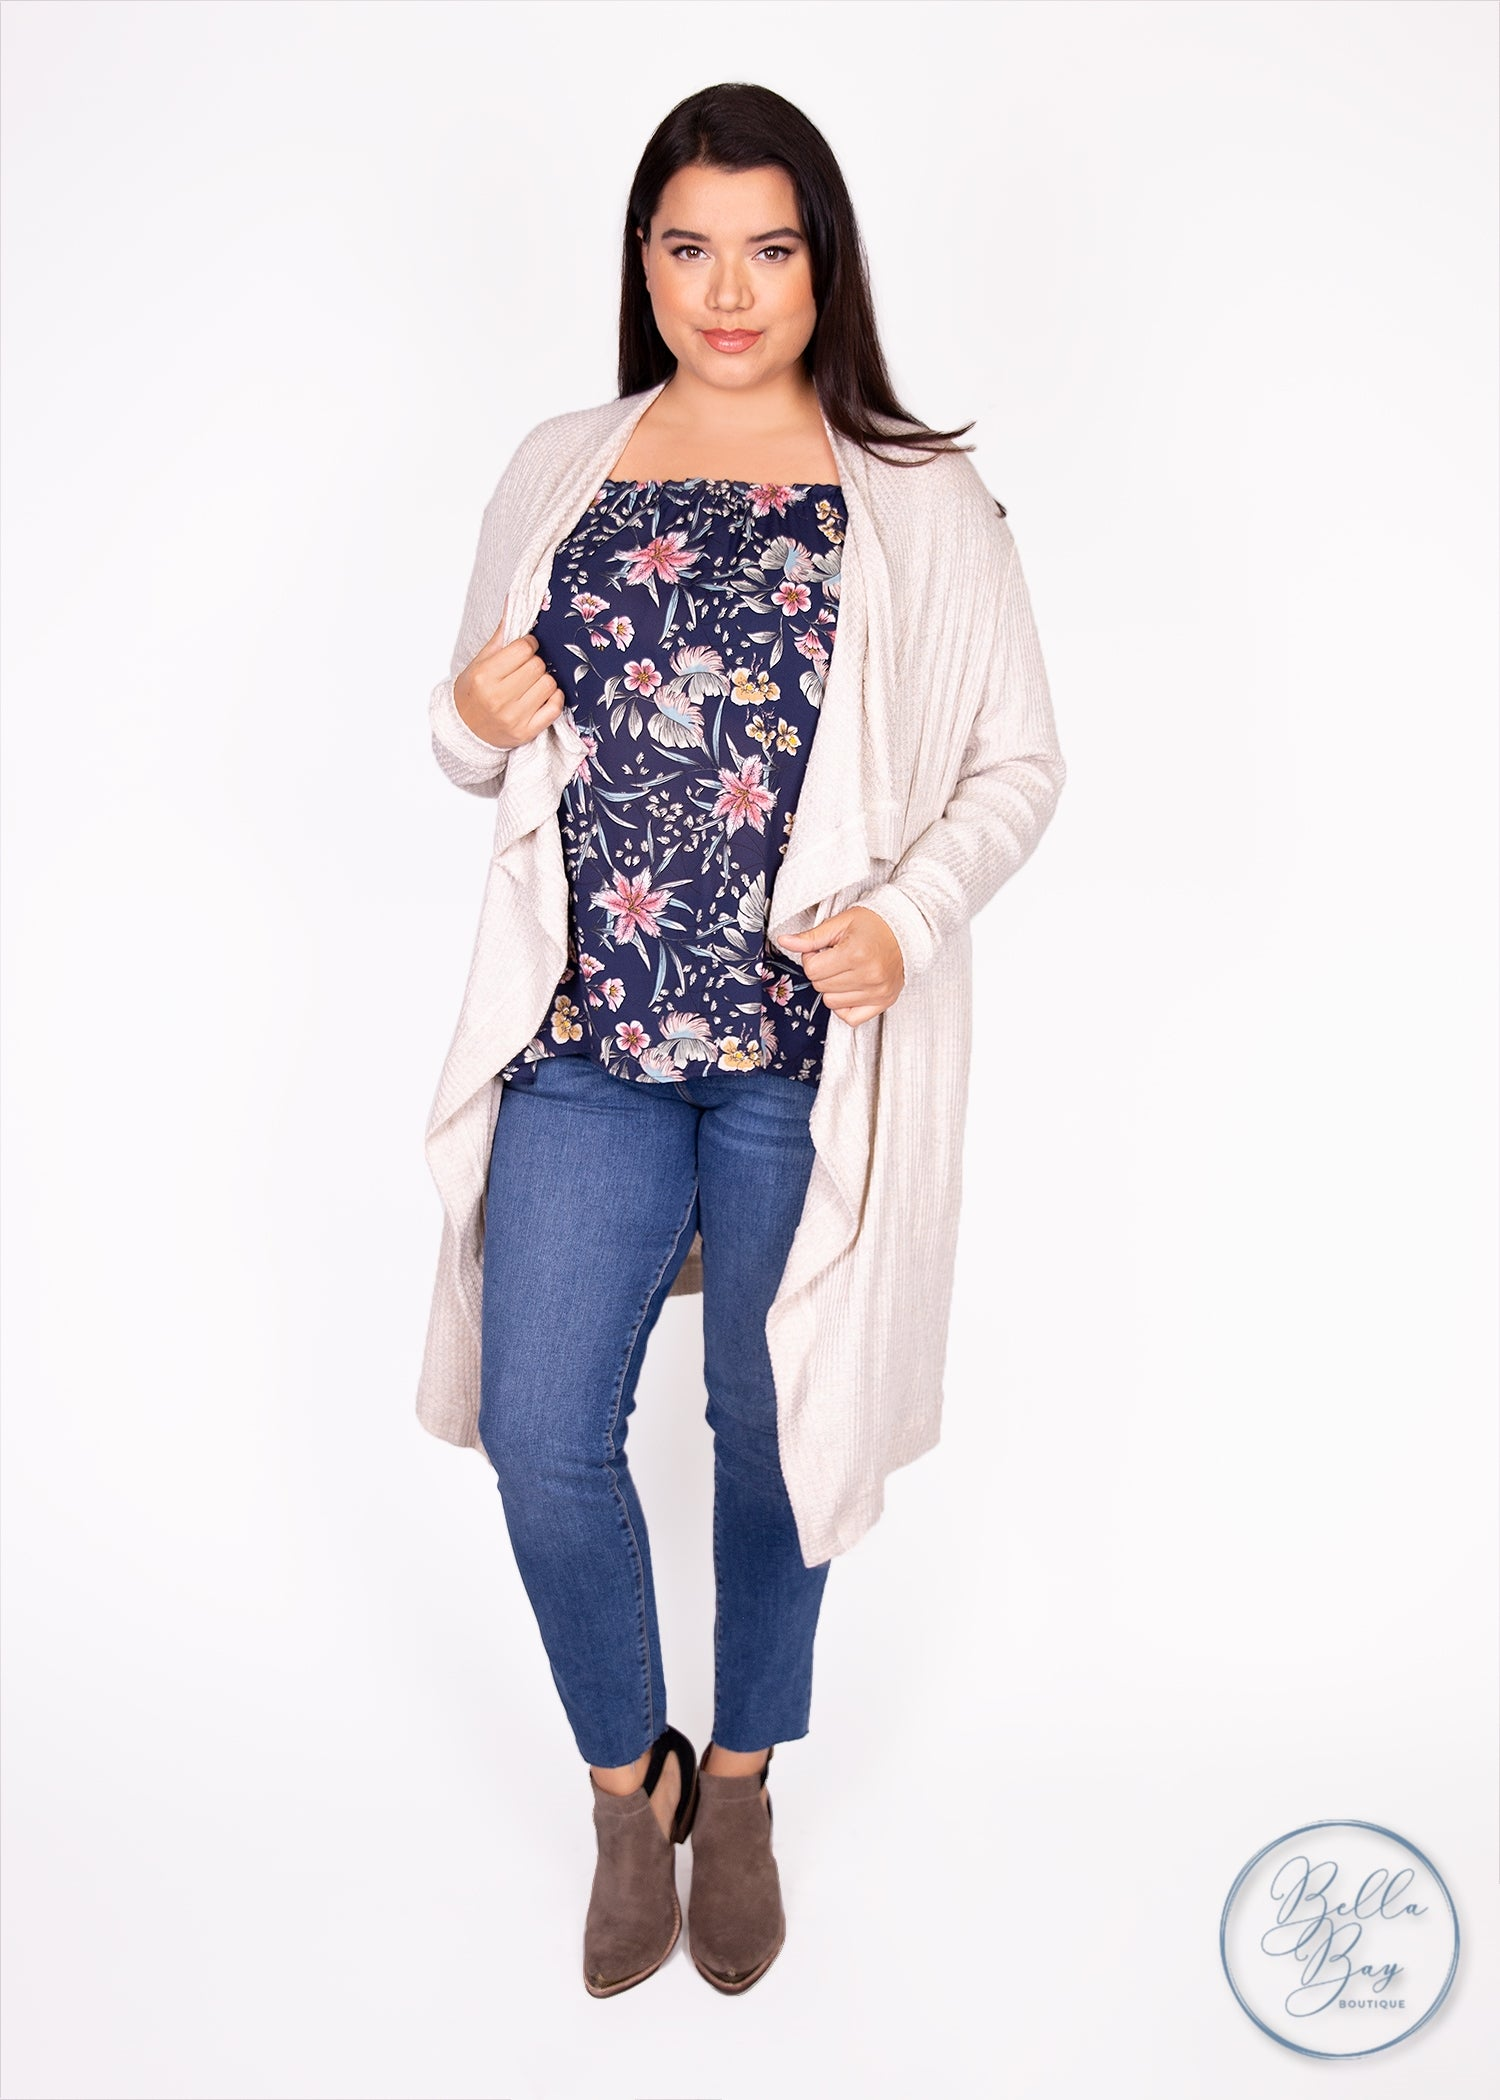 Paisley Raye Dusty Miller Cardigan - Oatmeal Waffle Knit (0X) - Paisley Raye with Bella Bay Boutique, shop now at  https://shopbellabay.com/ or locally in Newport Oregon